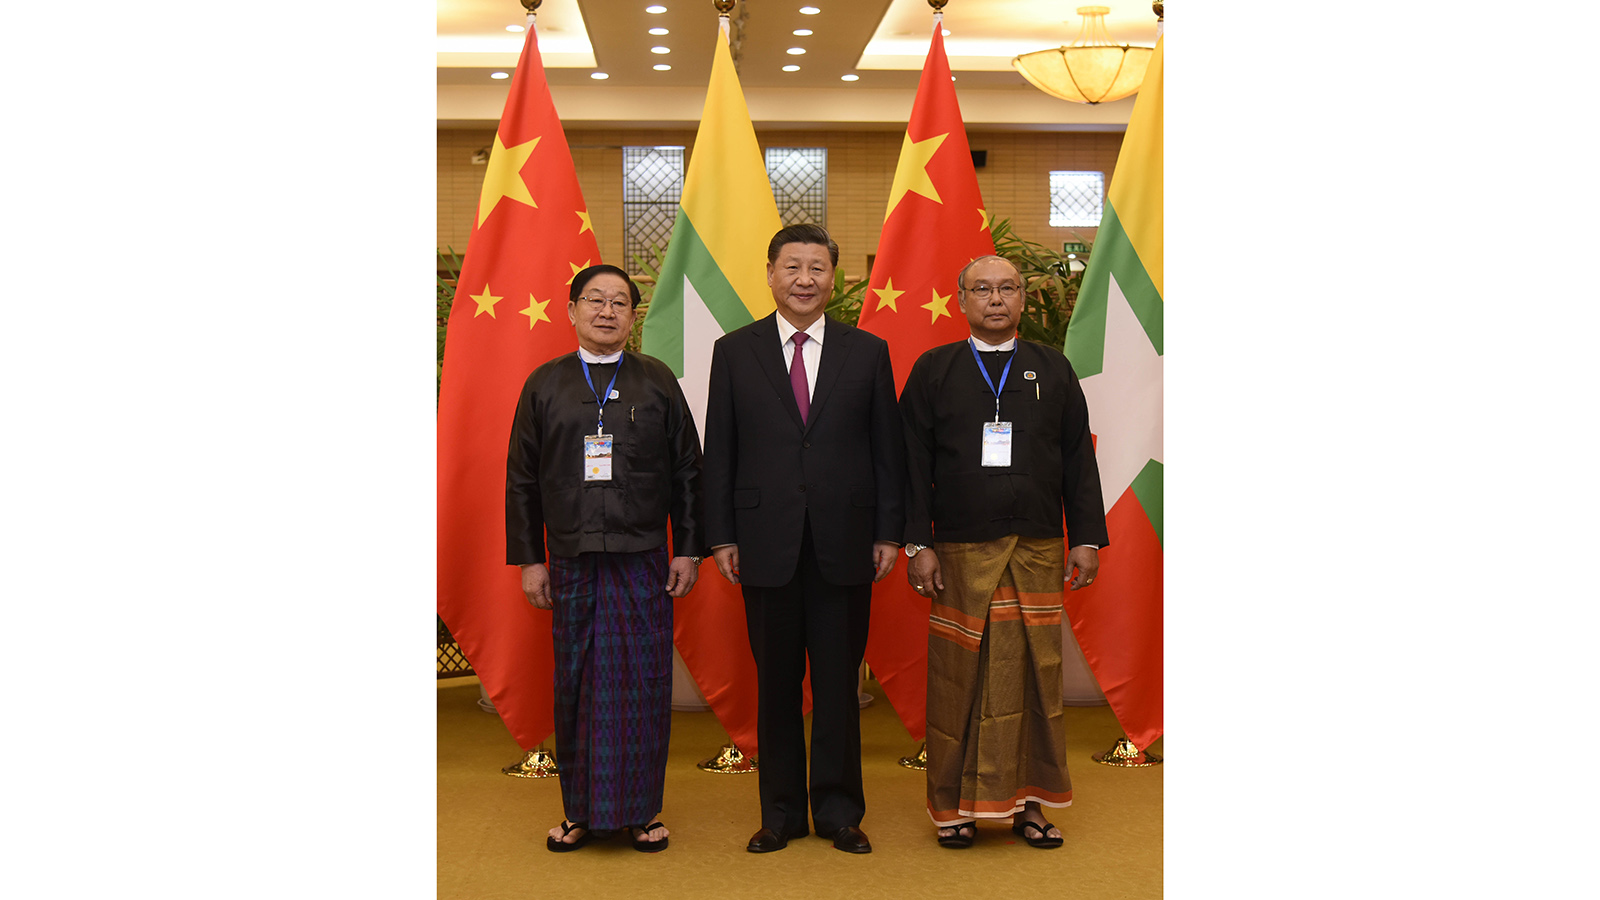 President of the People's Republic of China Mr Xi Jinping poses for the documentary photo together with Speaker U T Khun Myat and Speaker Mahn Win Khaing Than.Photo: MNA